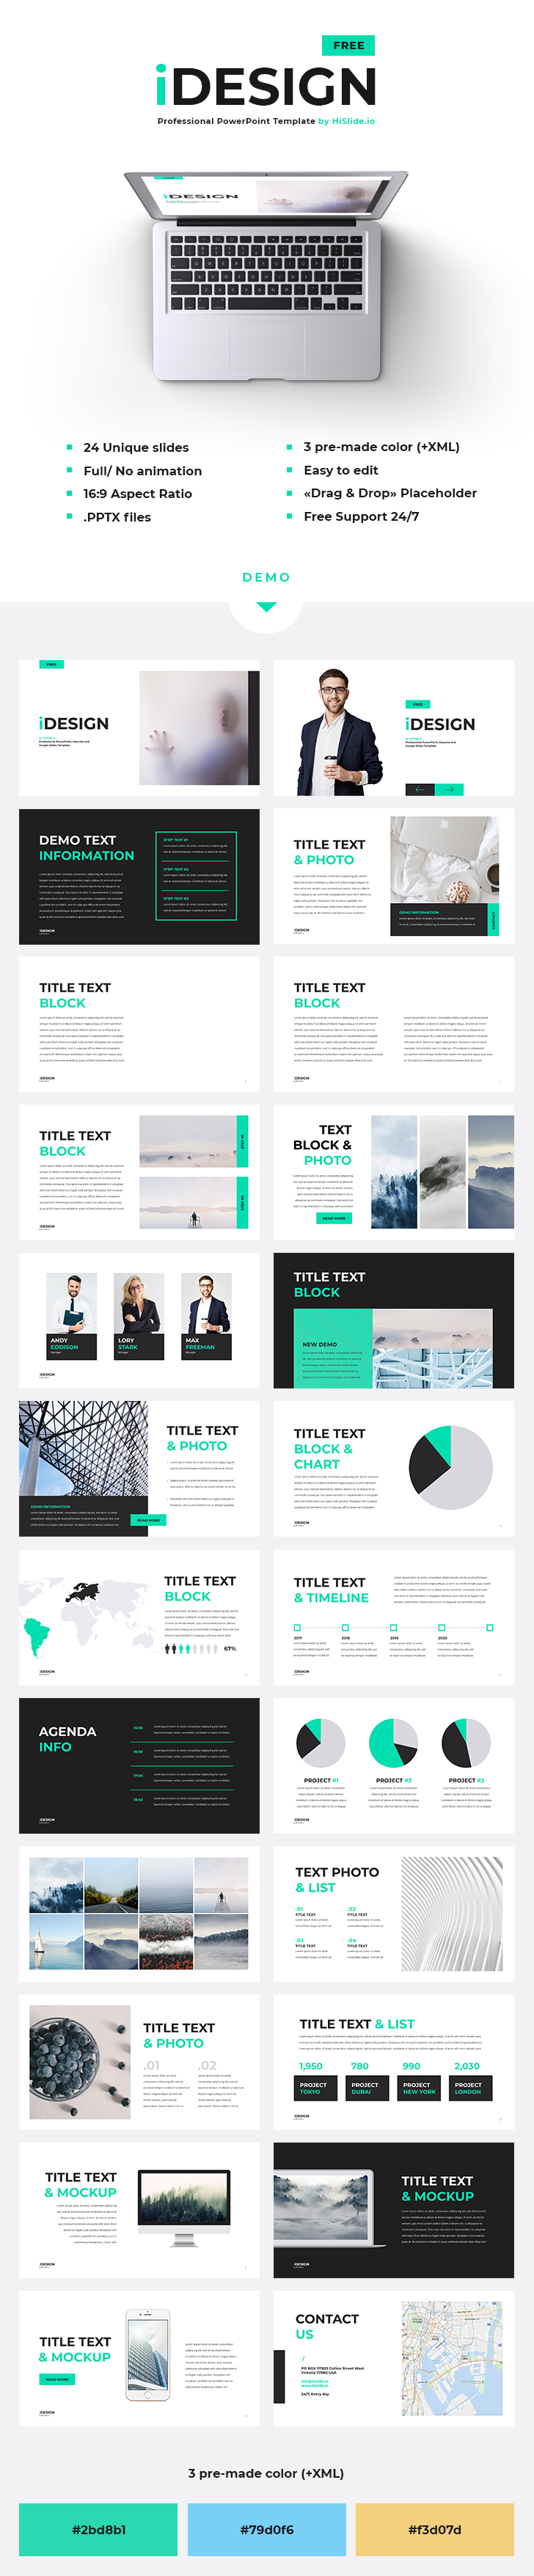 free powerpoint download